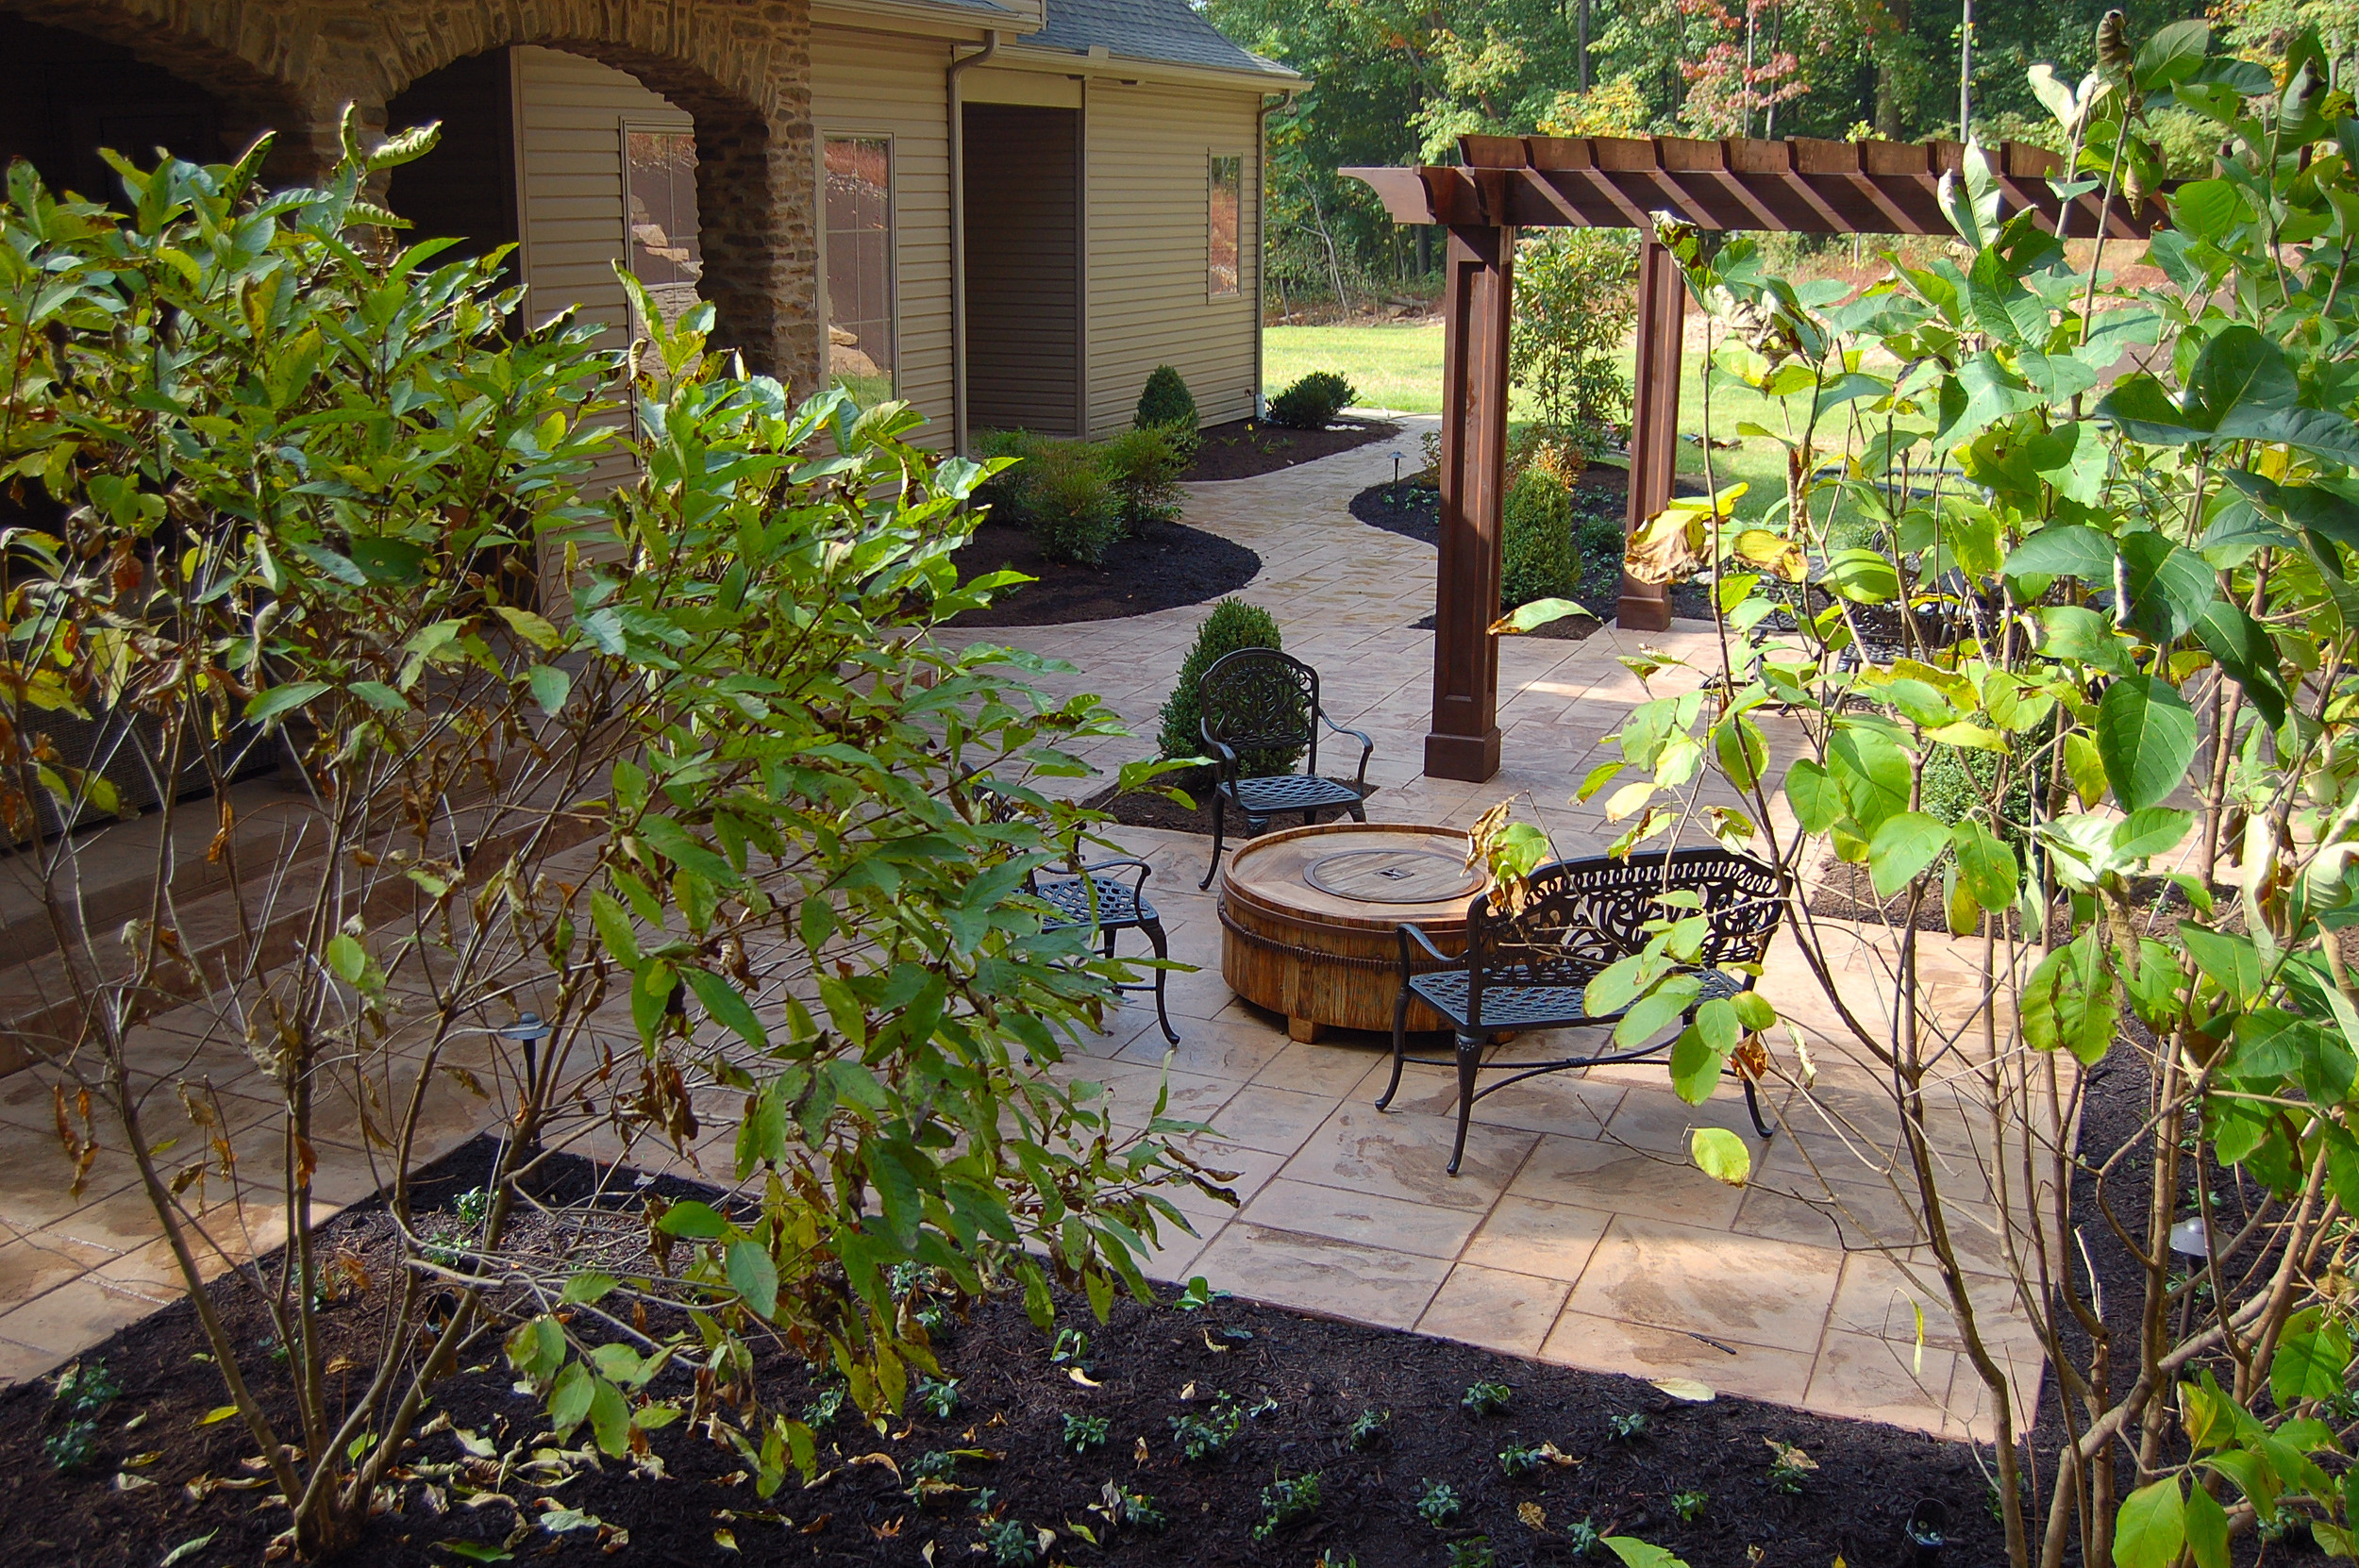 Outdoor seating area with pergola and brick archway